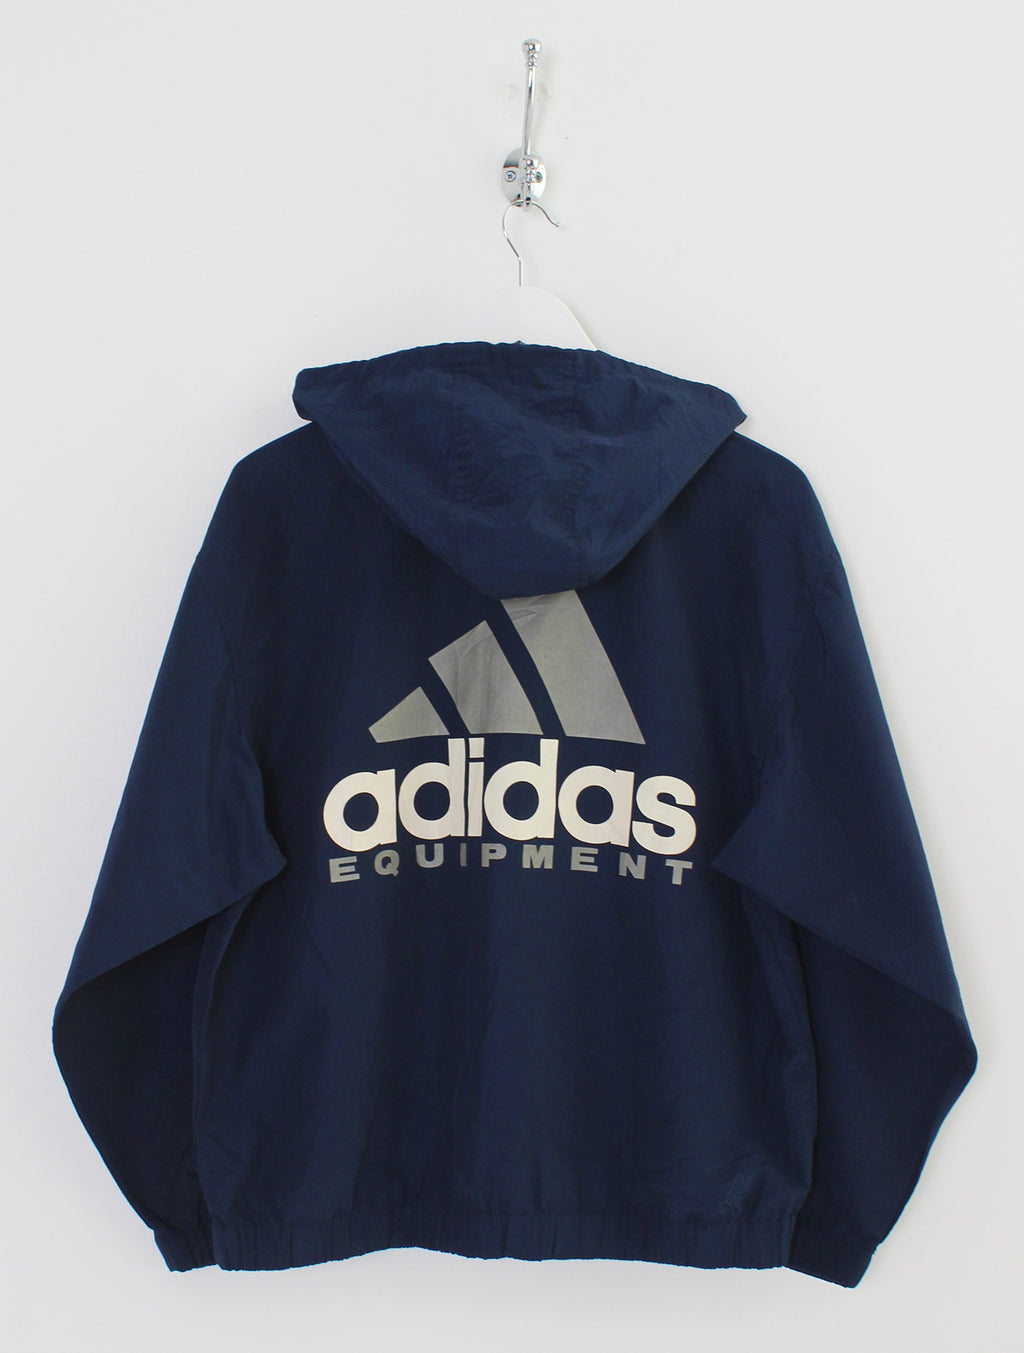 Adidas Equipment Jacket (S)